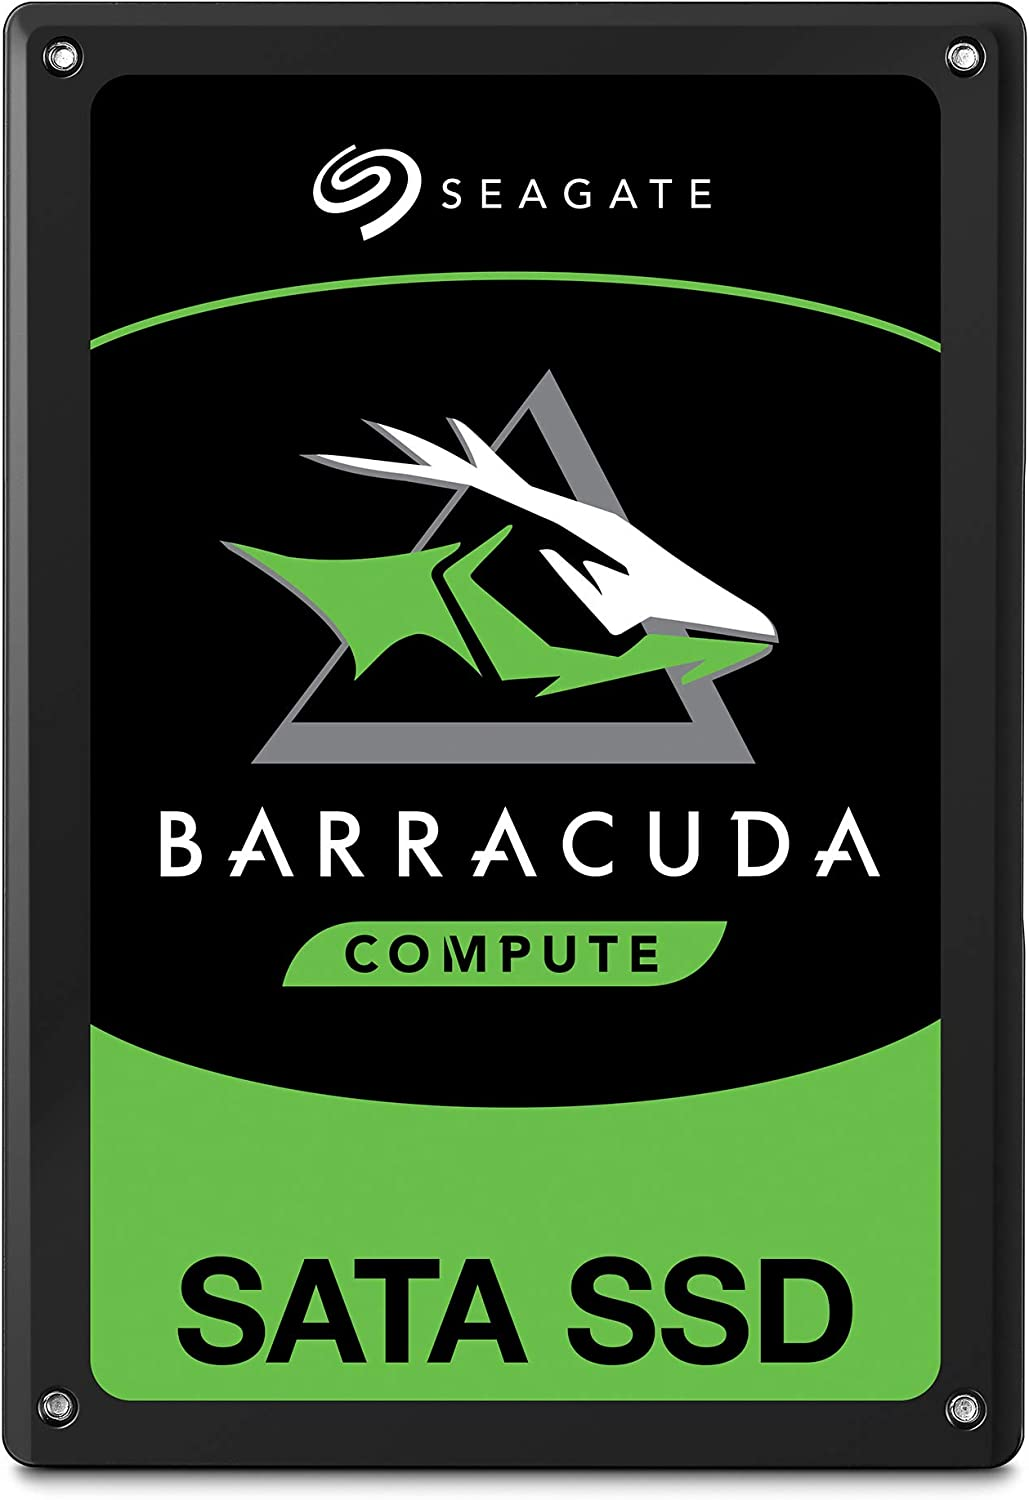 Seagate BarraCuda SSD 250GB Internal Solid State Drive – 2.5 Inch SATA 6Gb/s for Computer Desktop PC Laptop (STGS250401)